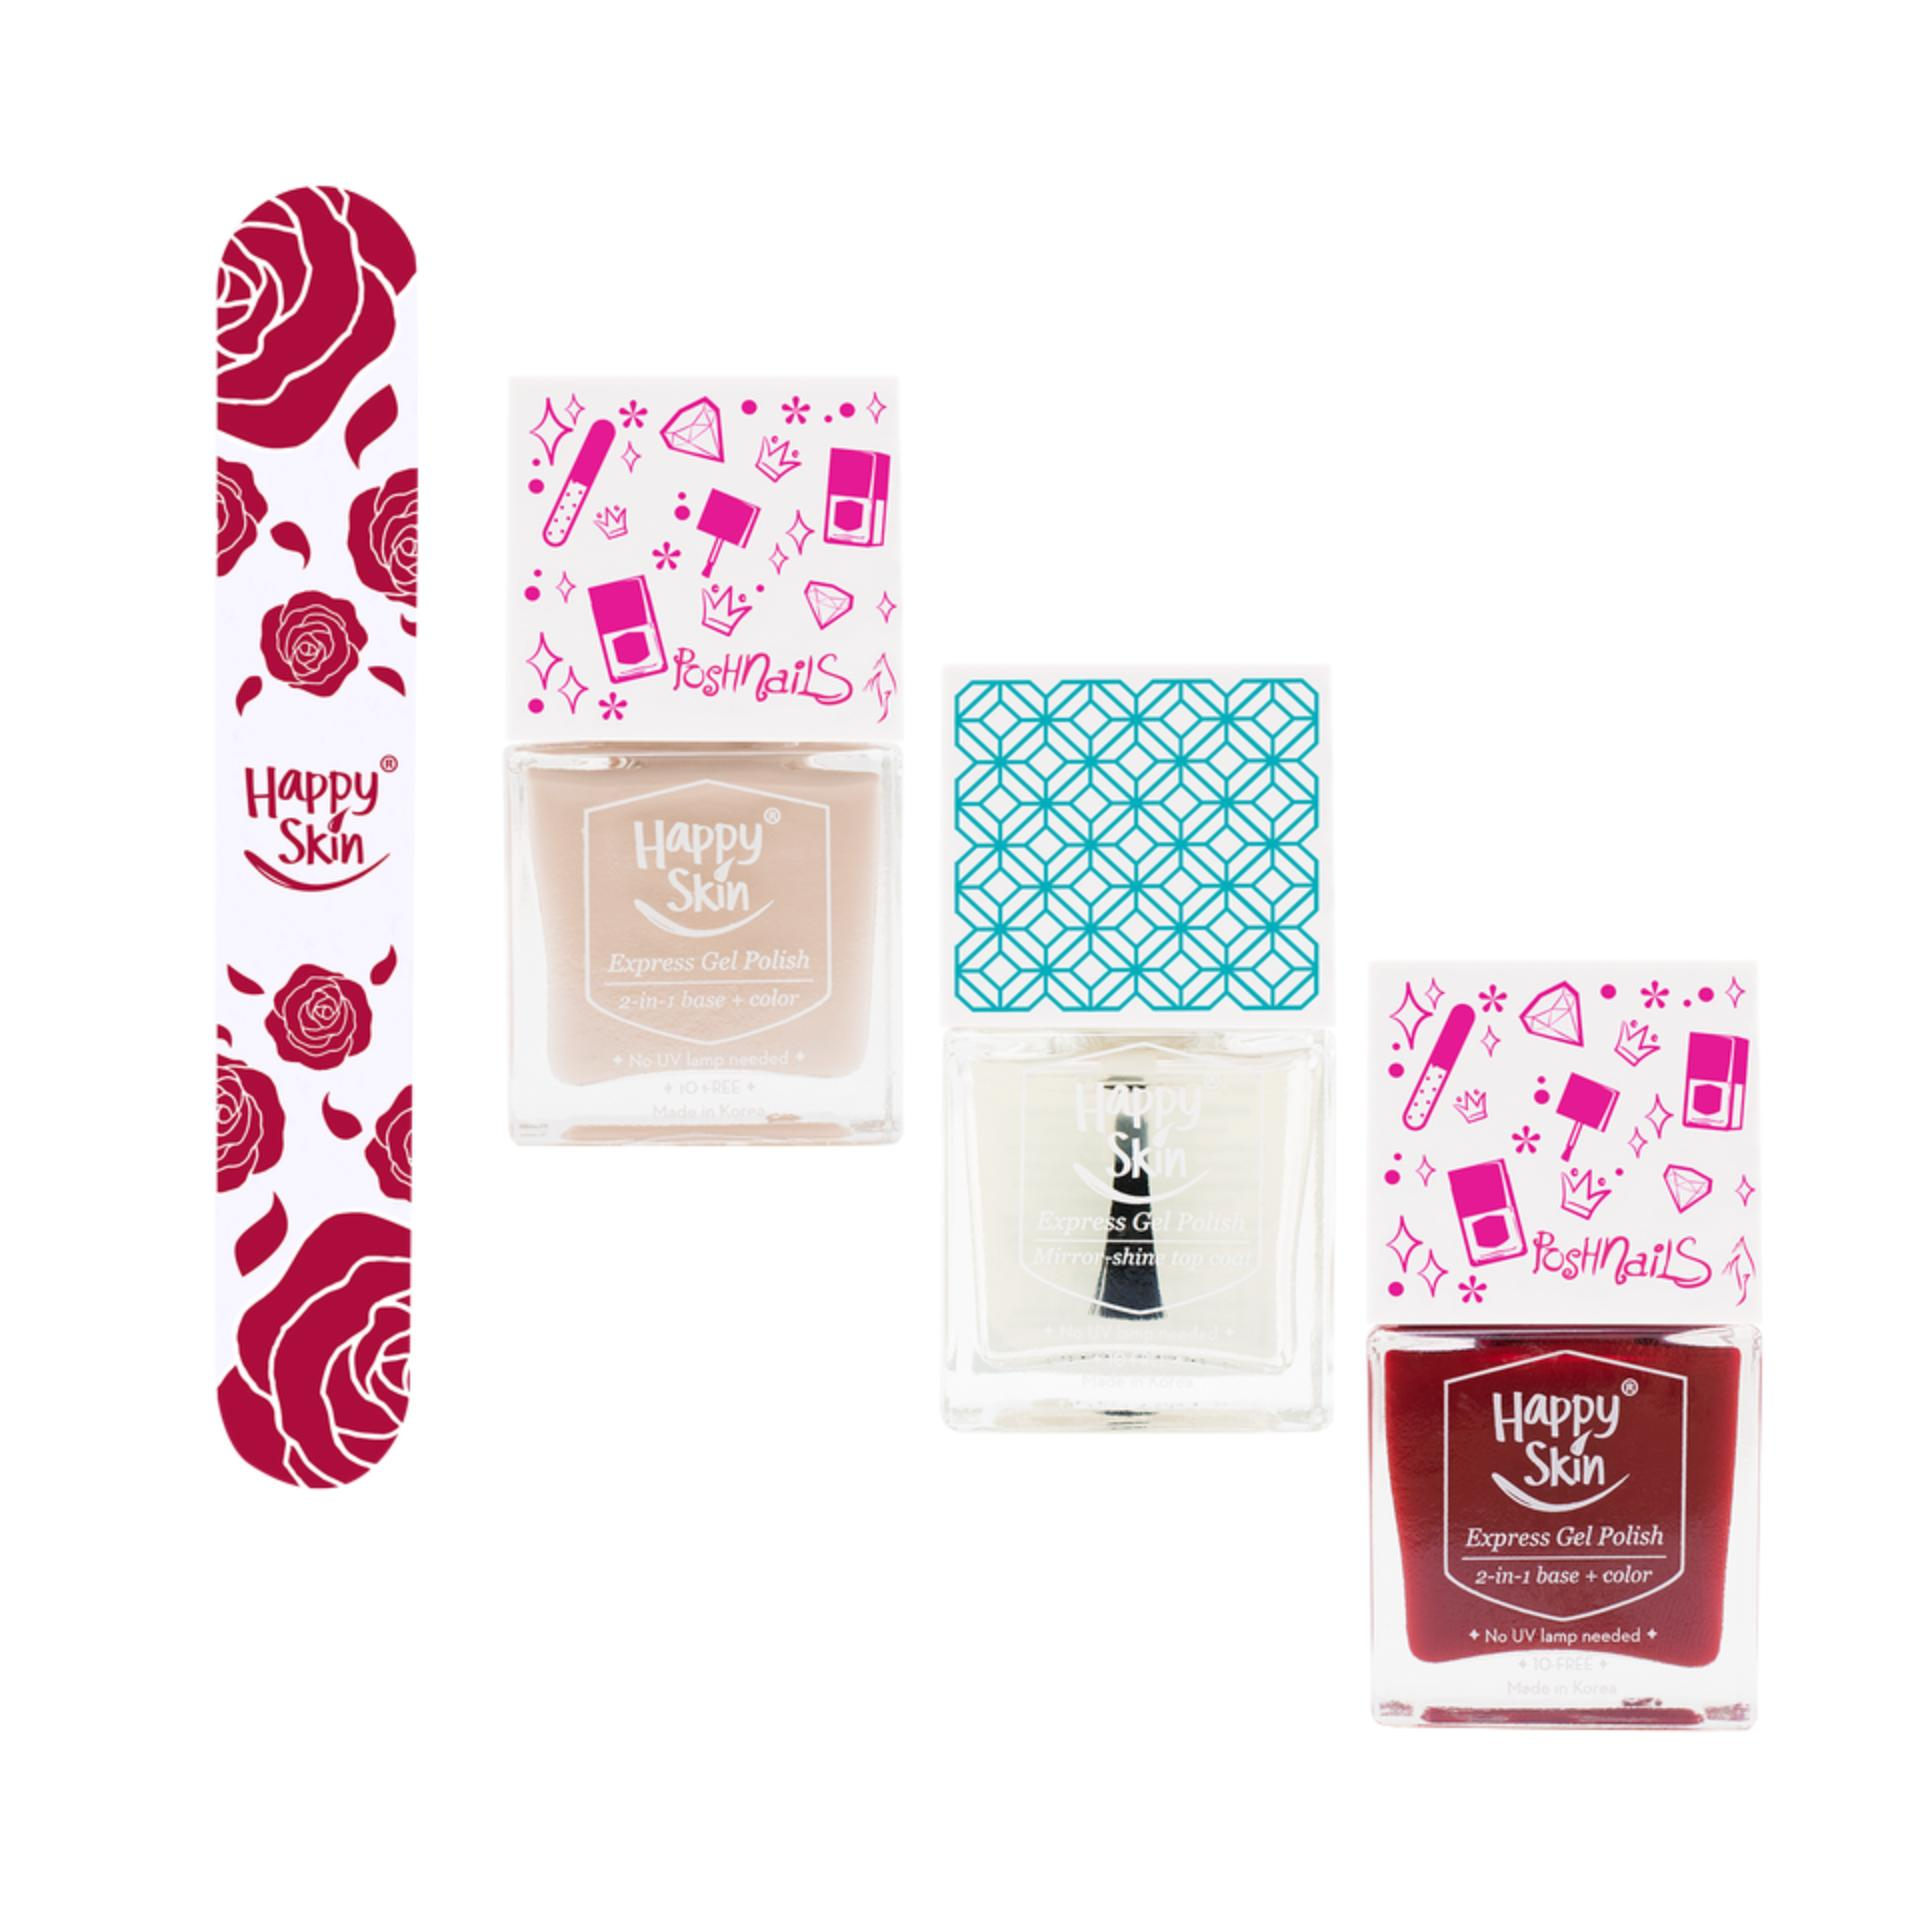 Happy Skin x Posh Nails Express Gel Polish Exclusive Set - Luxe & TLC Philippines